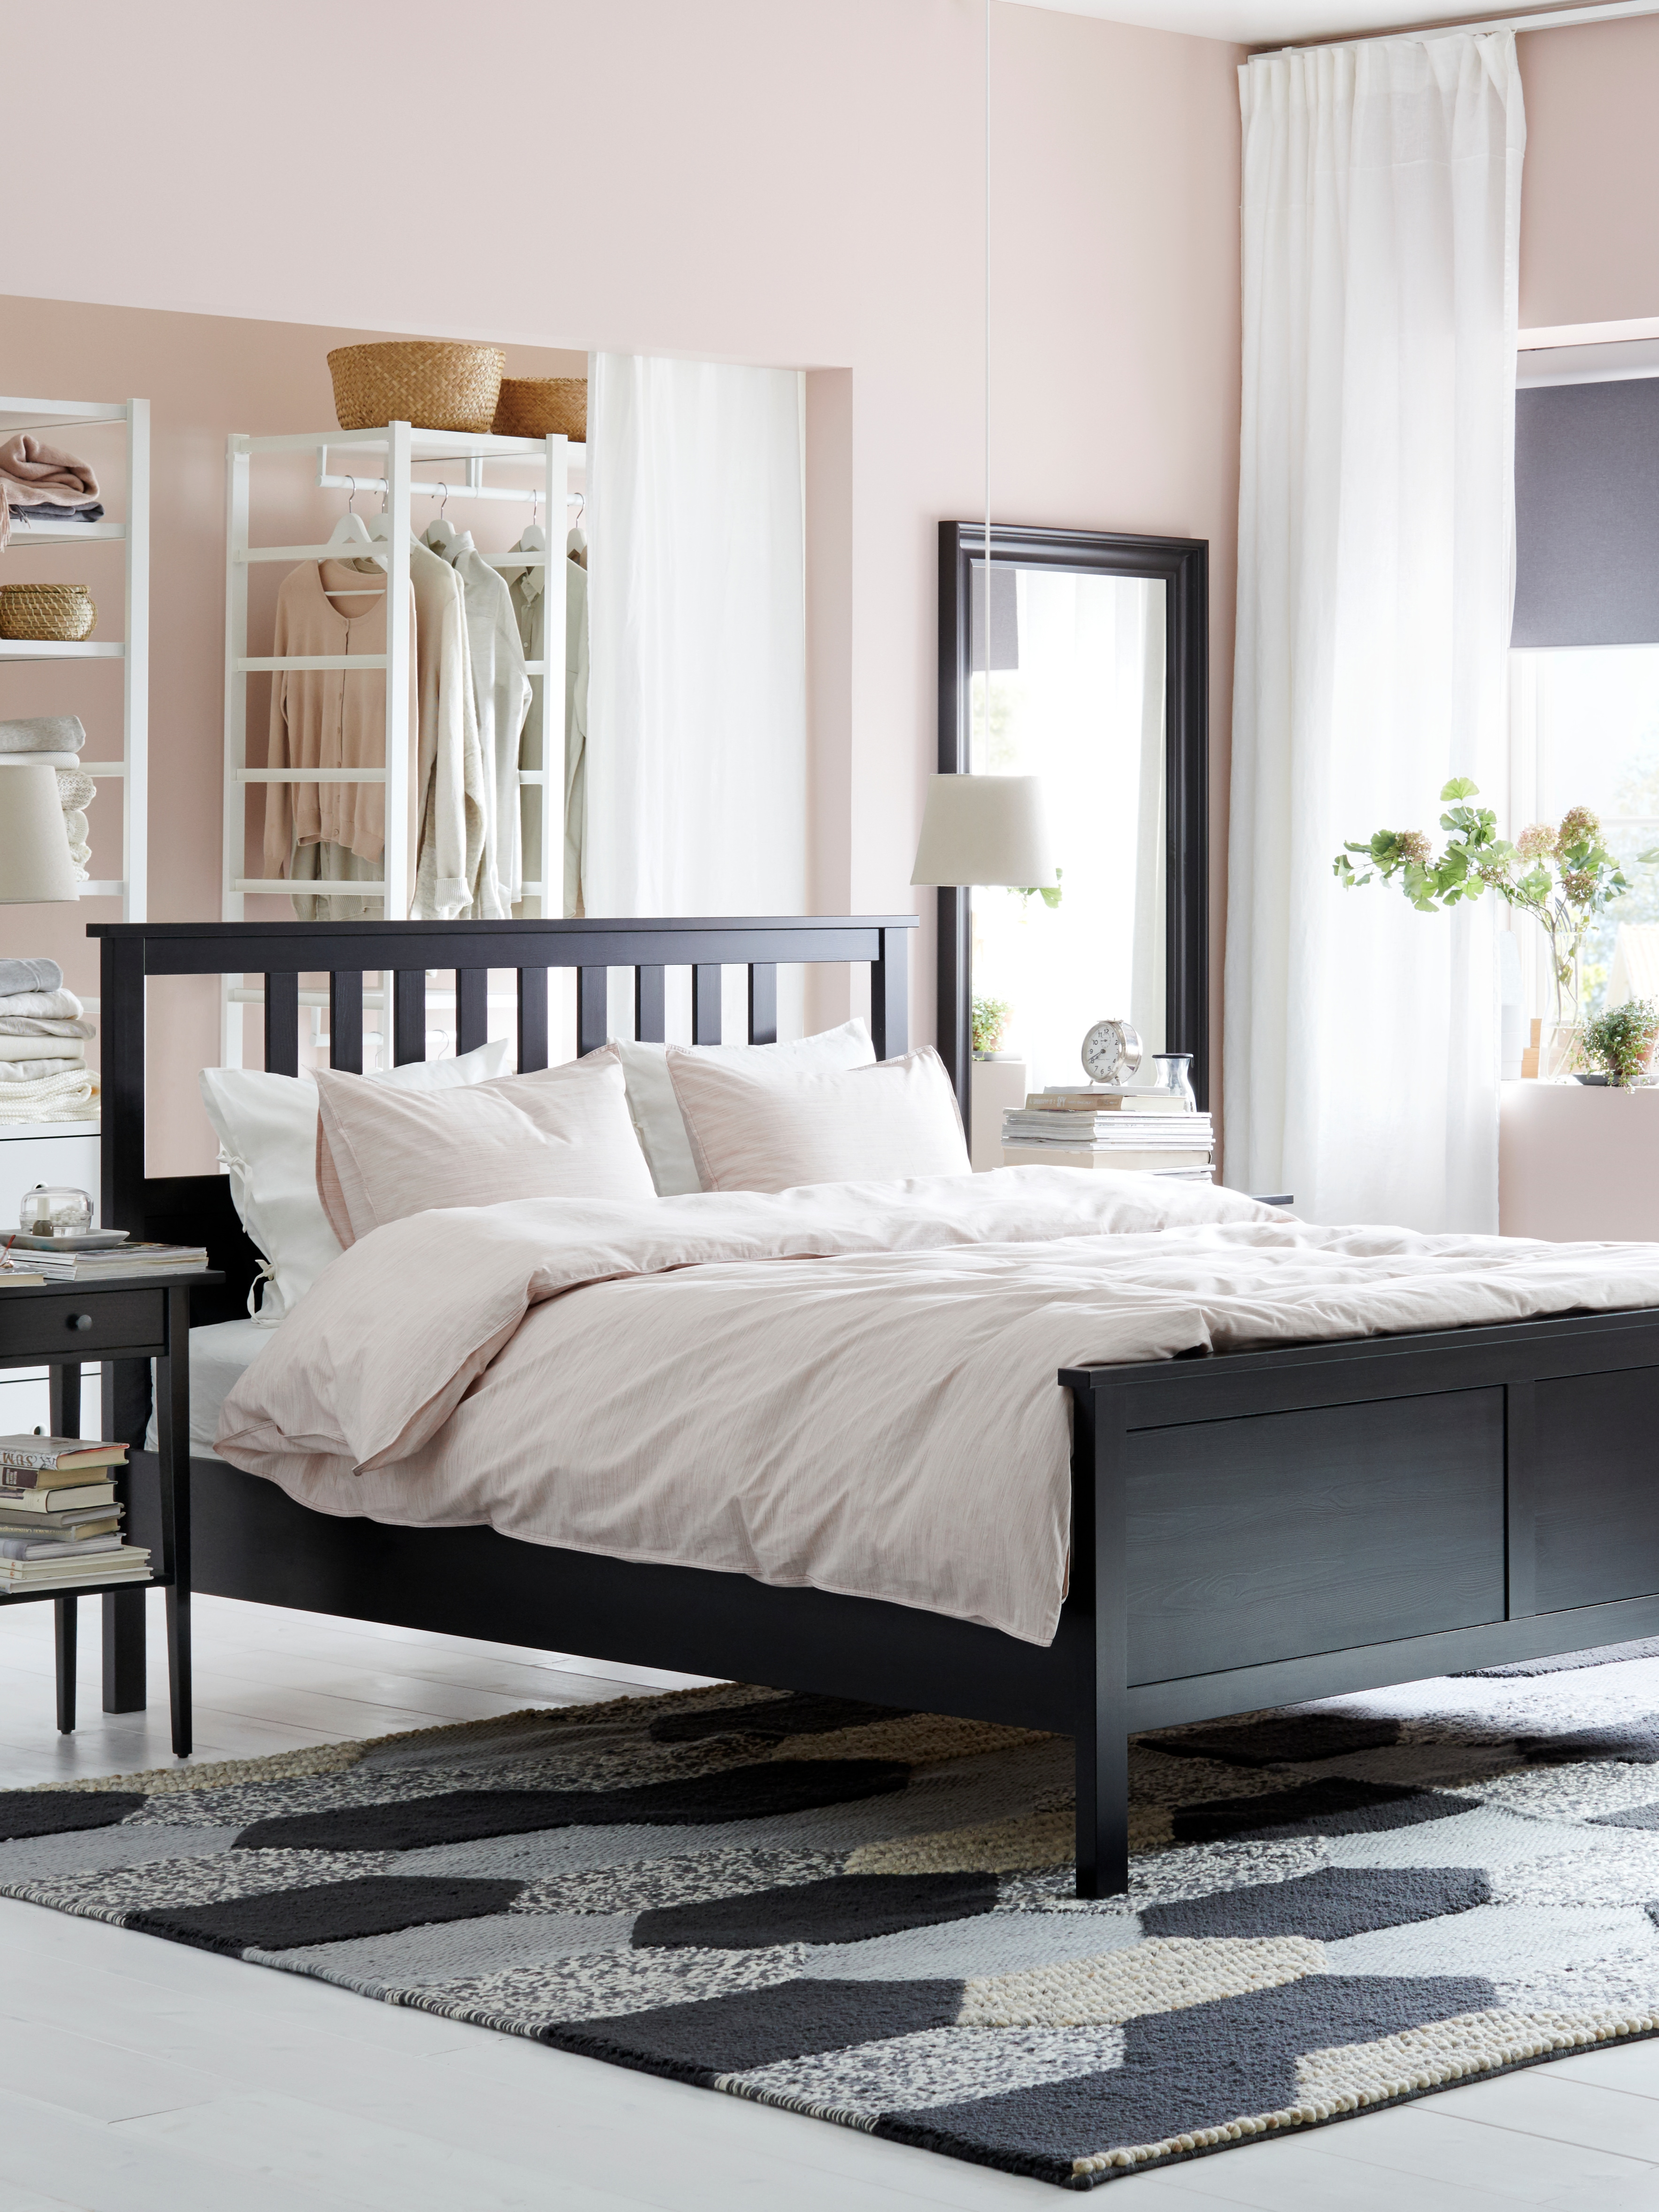 A black-brown HEMNES bed frame with a pink quilt cover in is in the middle of a bedroom by a matching bedside table.